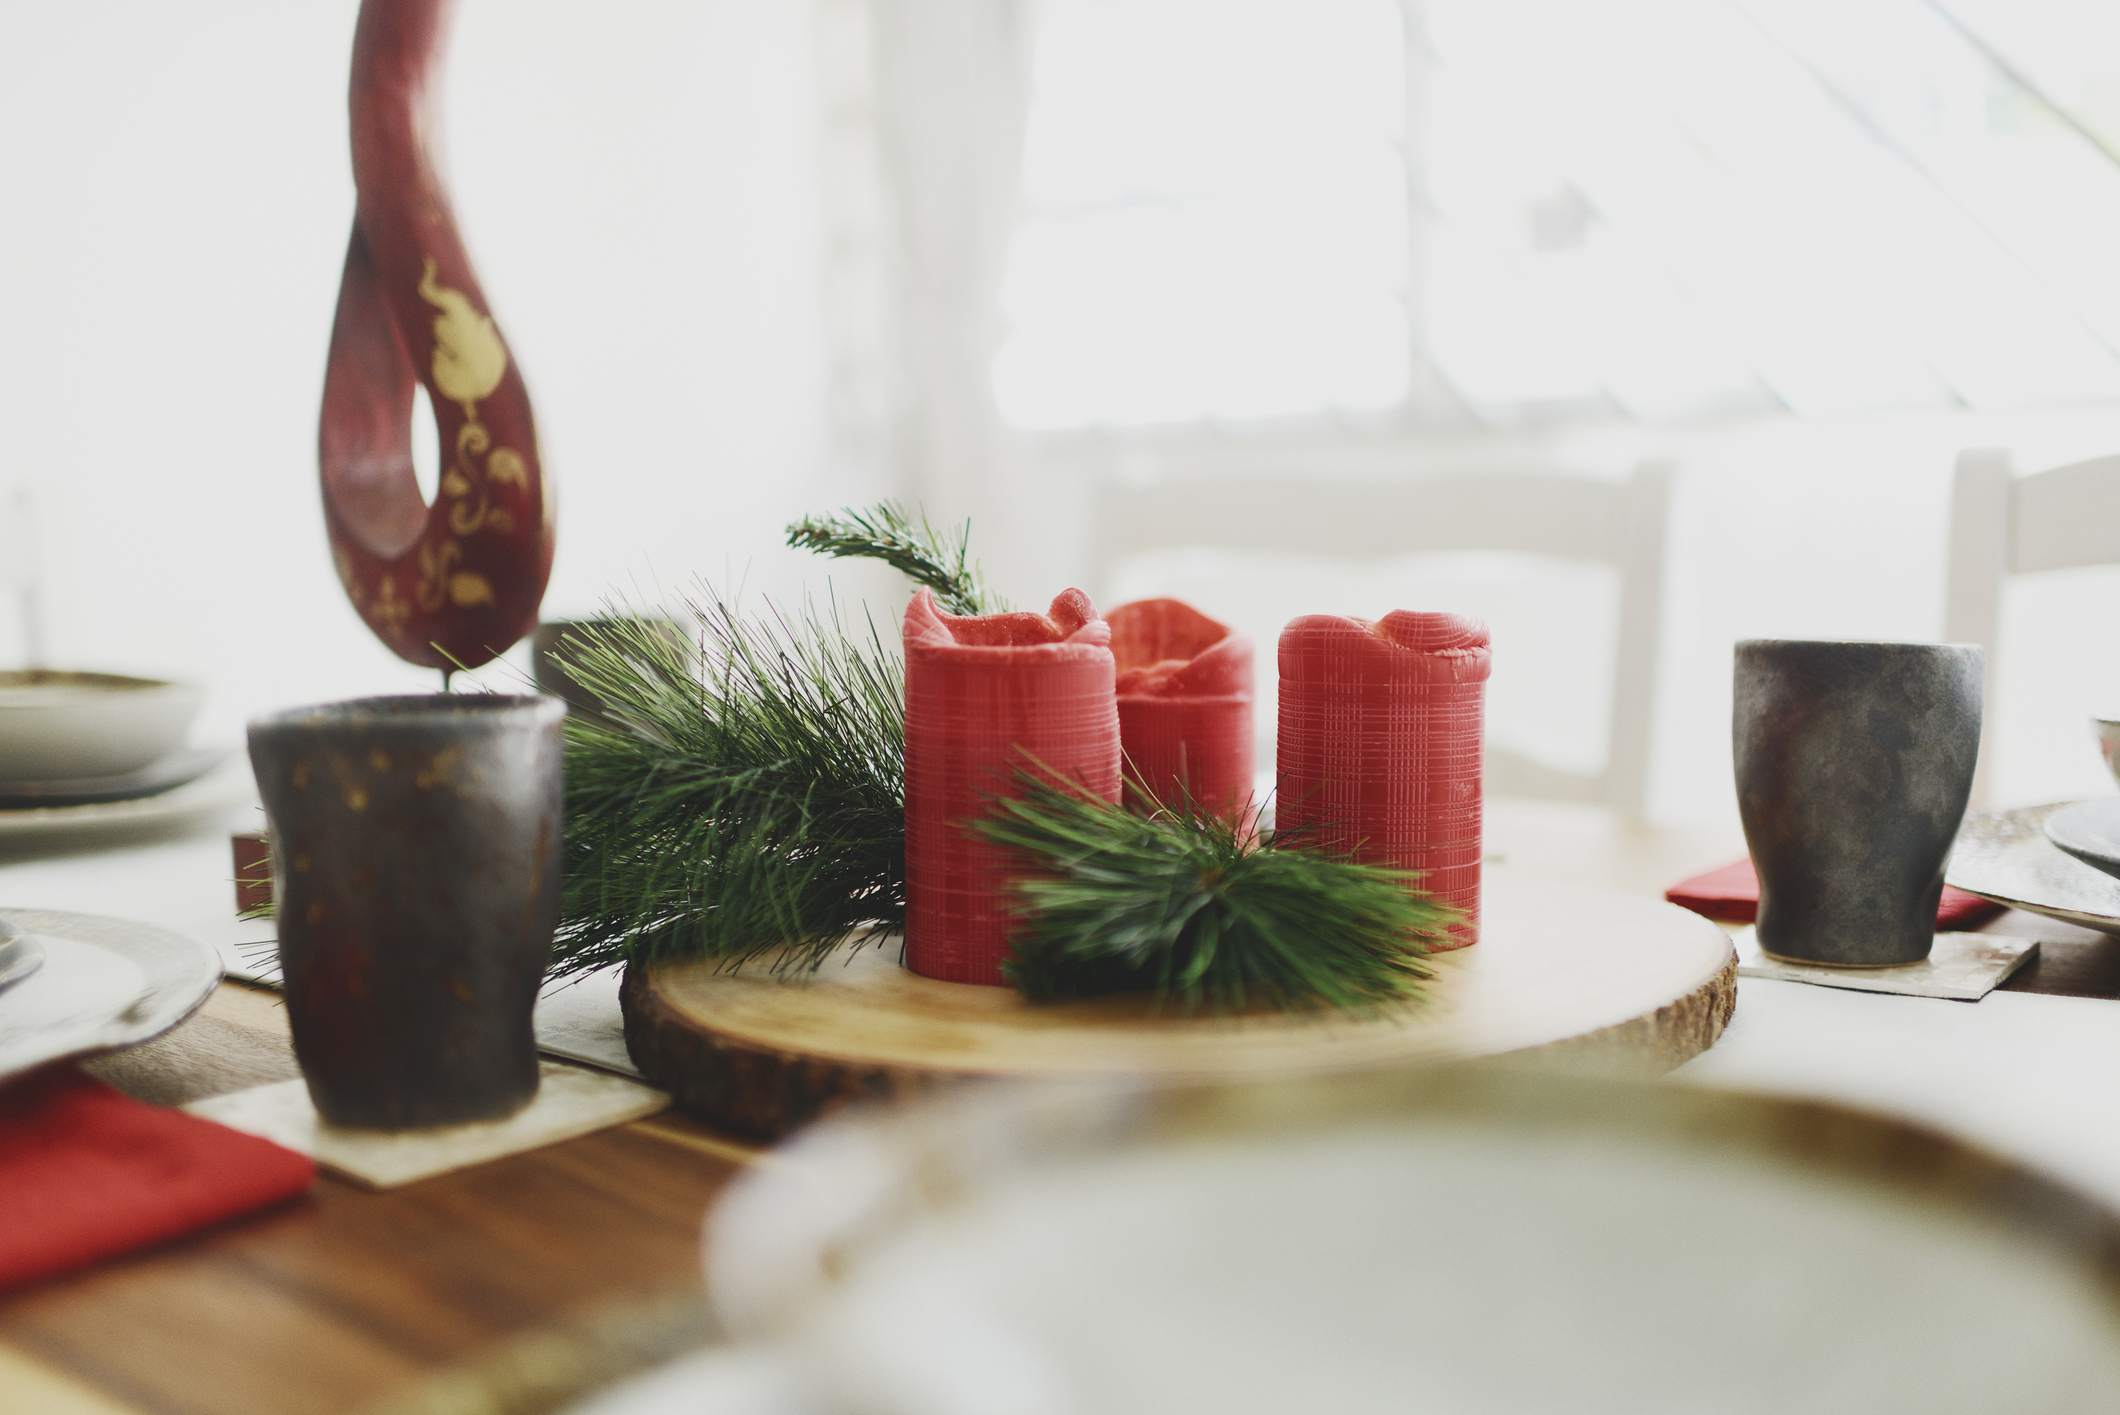 winter decor with red candles and evergreen branches